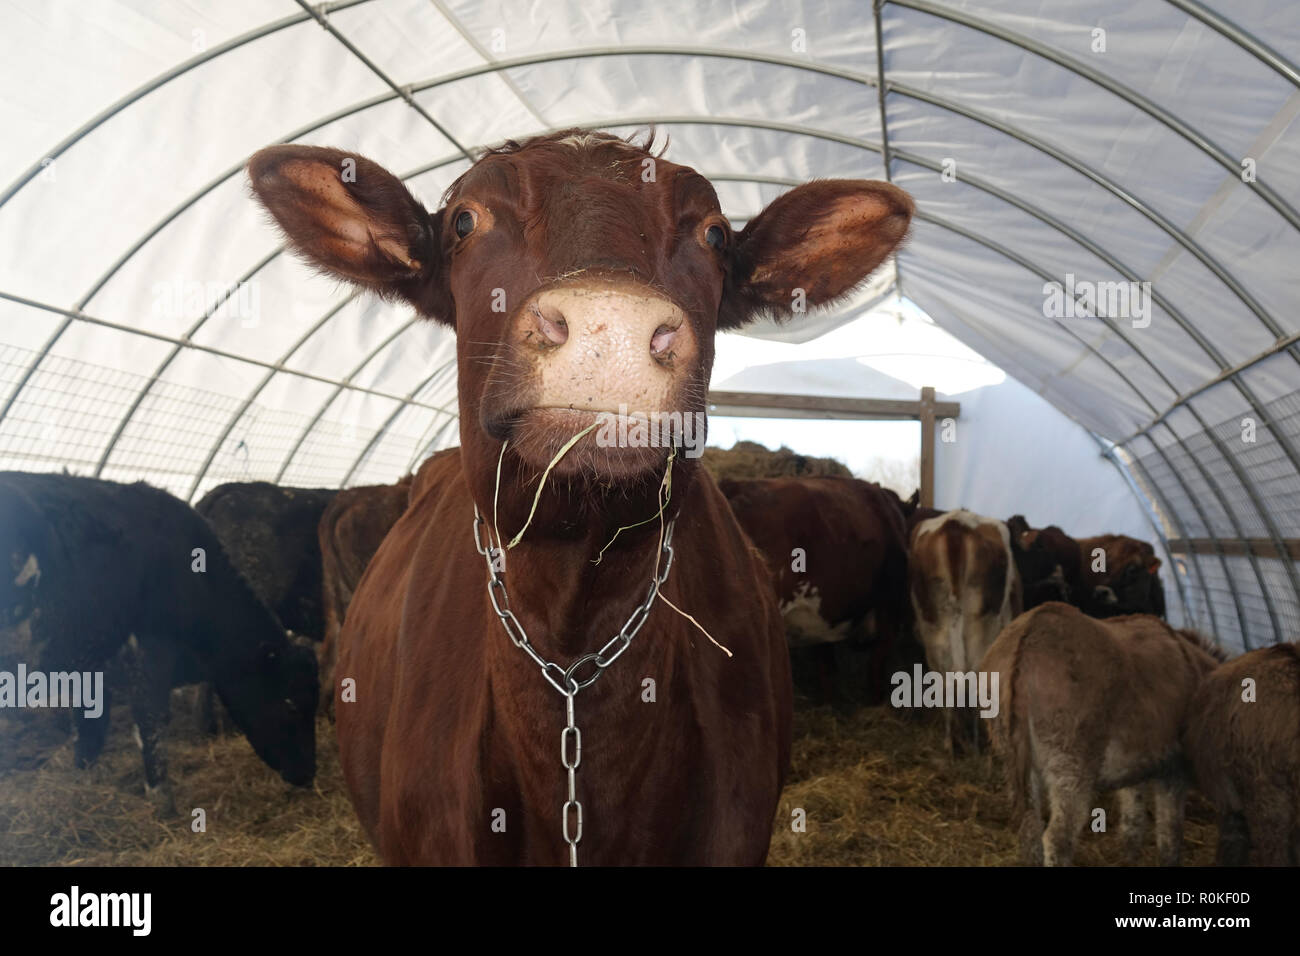 Portrait of a Brown Cow inside a Tent Standing on Top of Hay with Donkeys in the Background Stock Photo